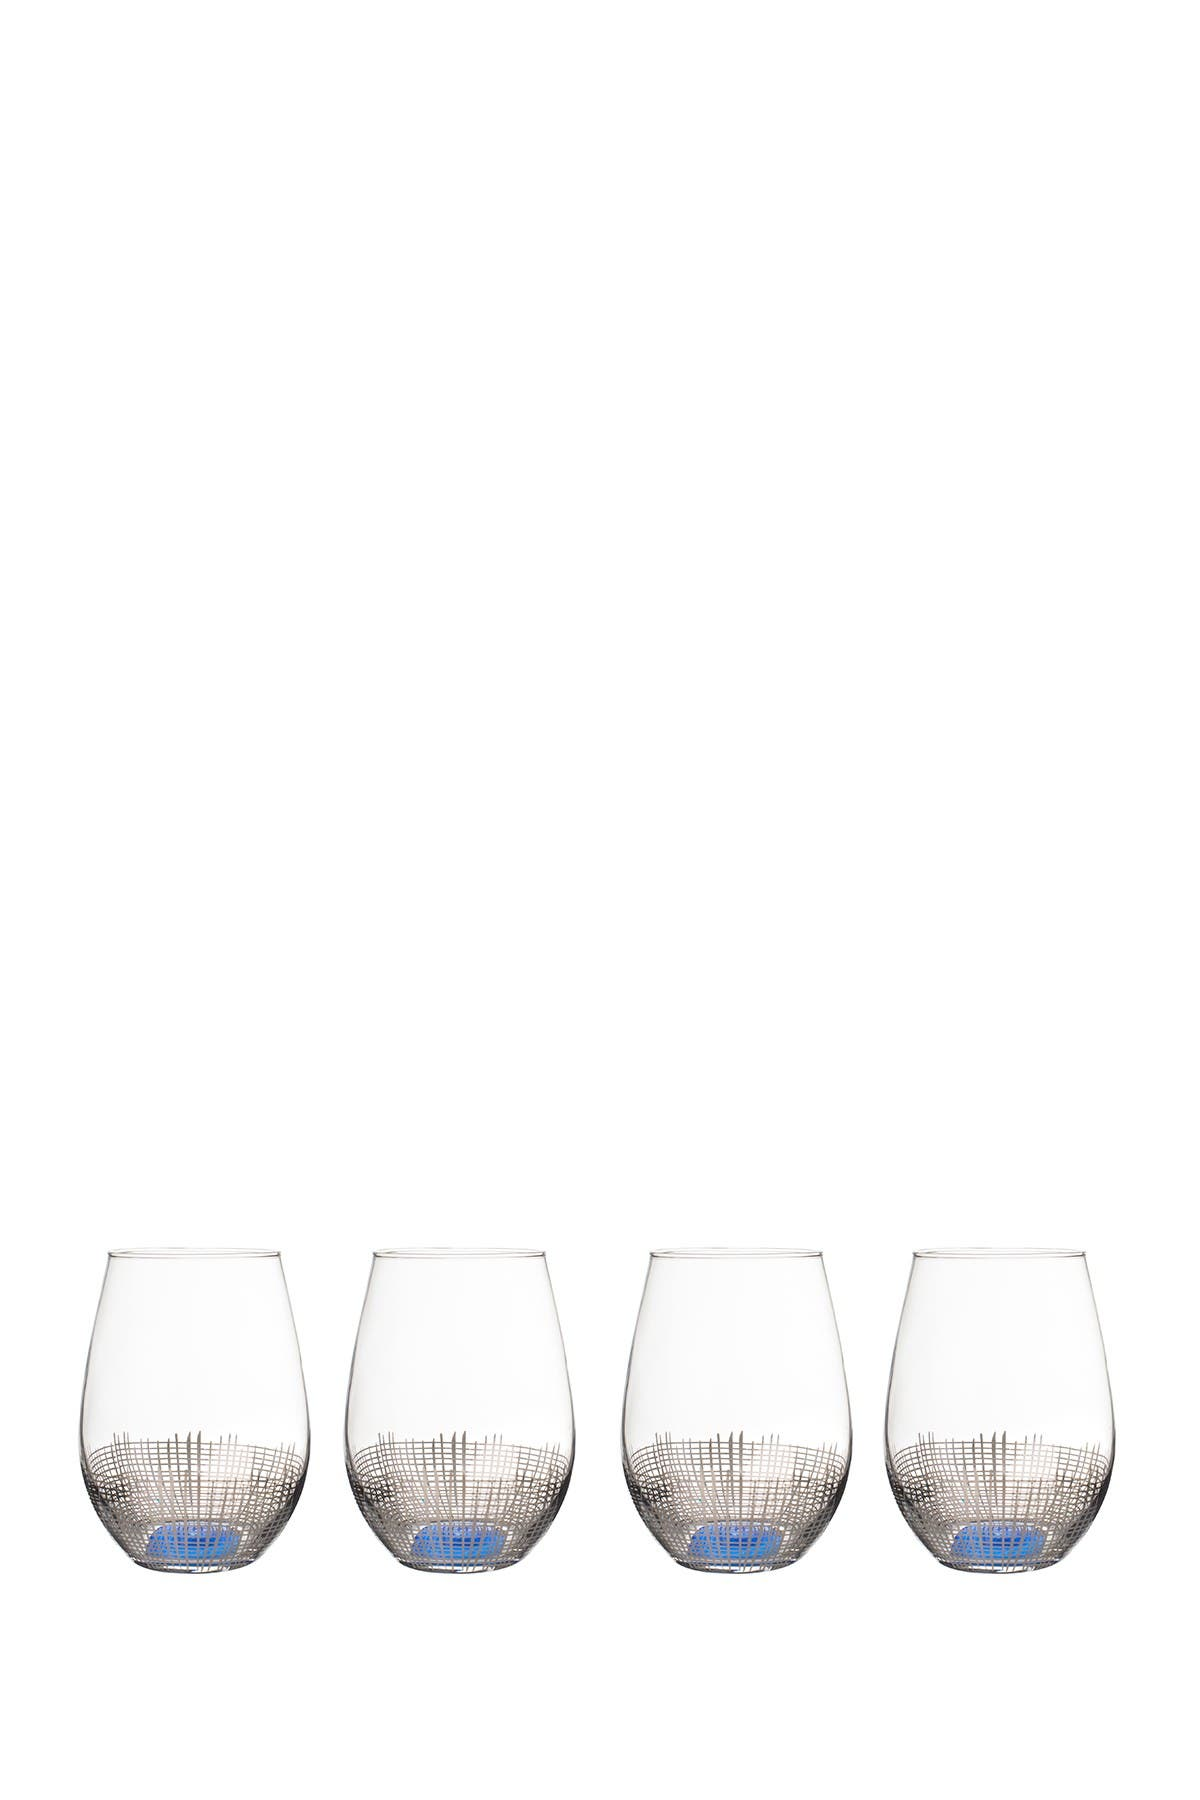 Image of Jay Import Silver/Blue Annalise Stemless Goblet - Set of 4